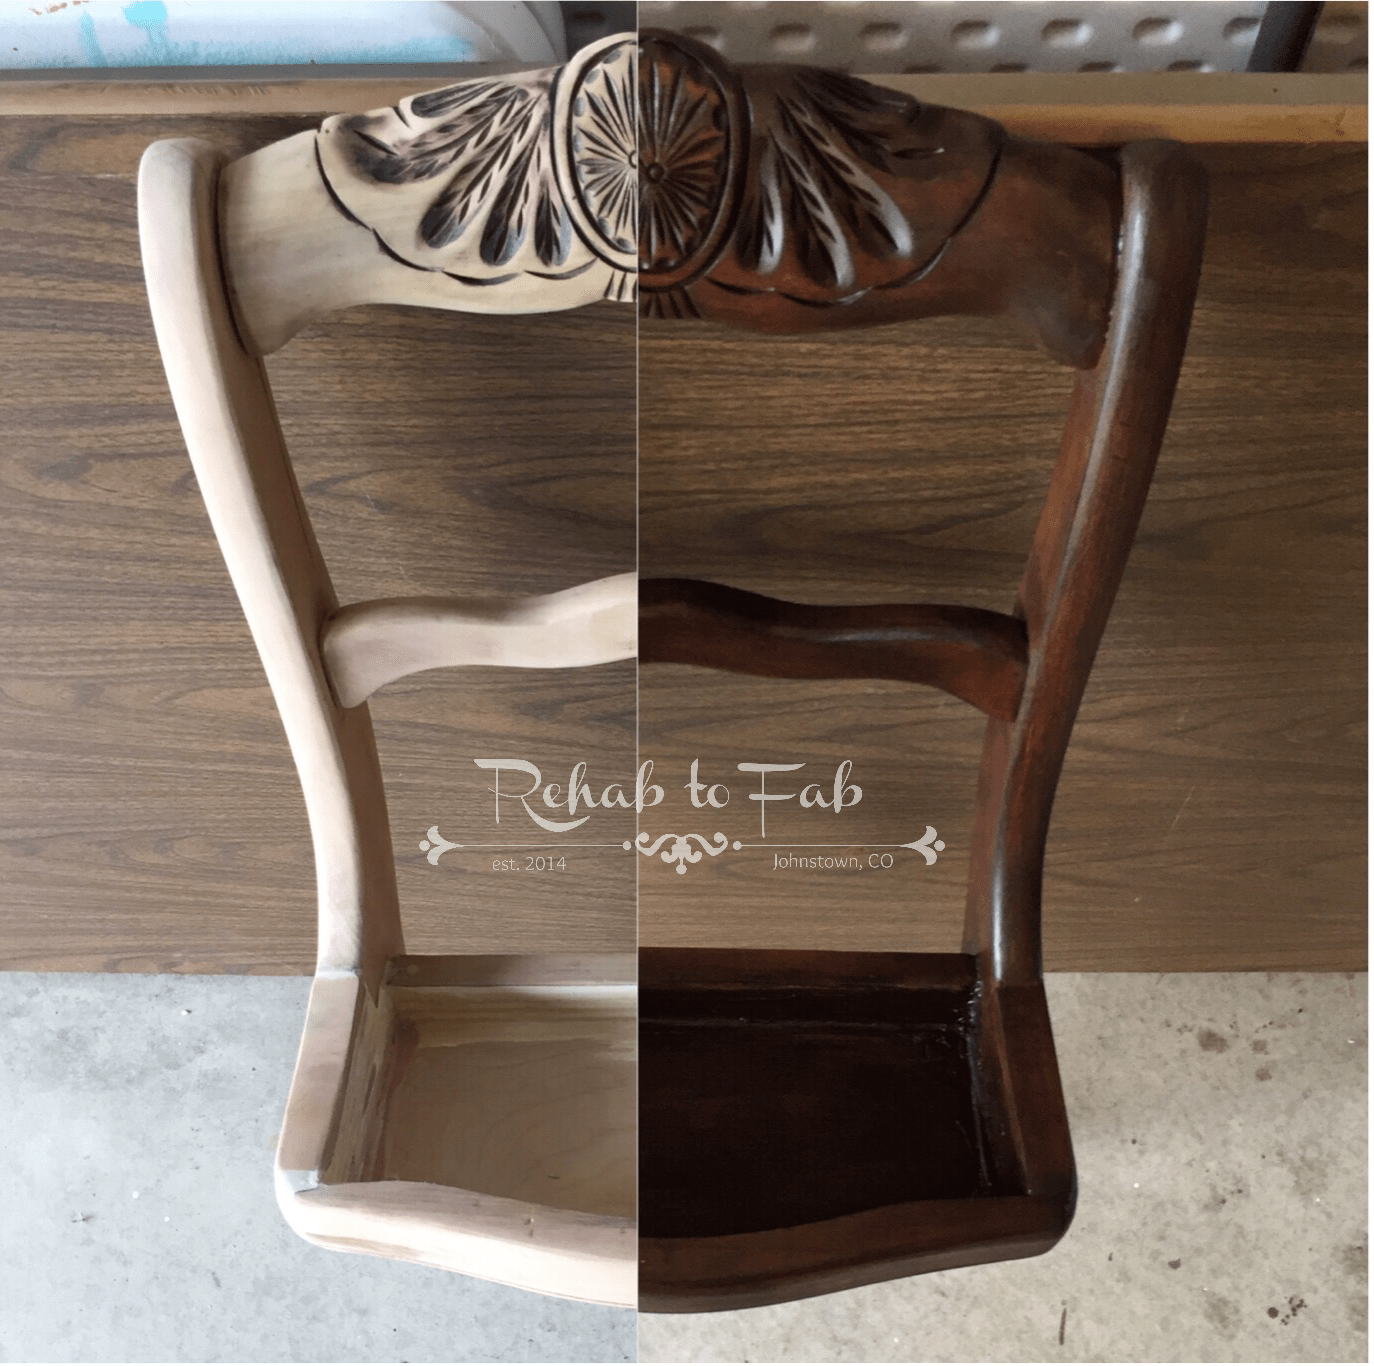 yilan chair design competition 2018 covers leeds broken turned succulent planter general finishes